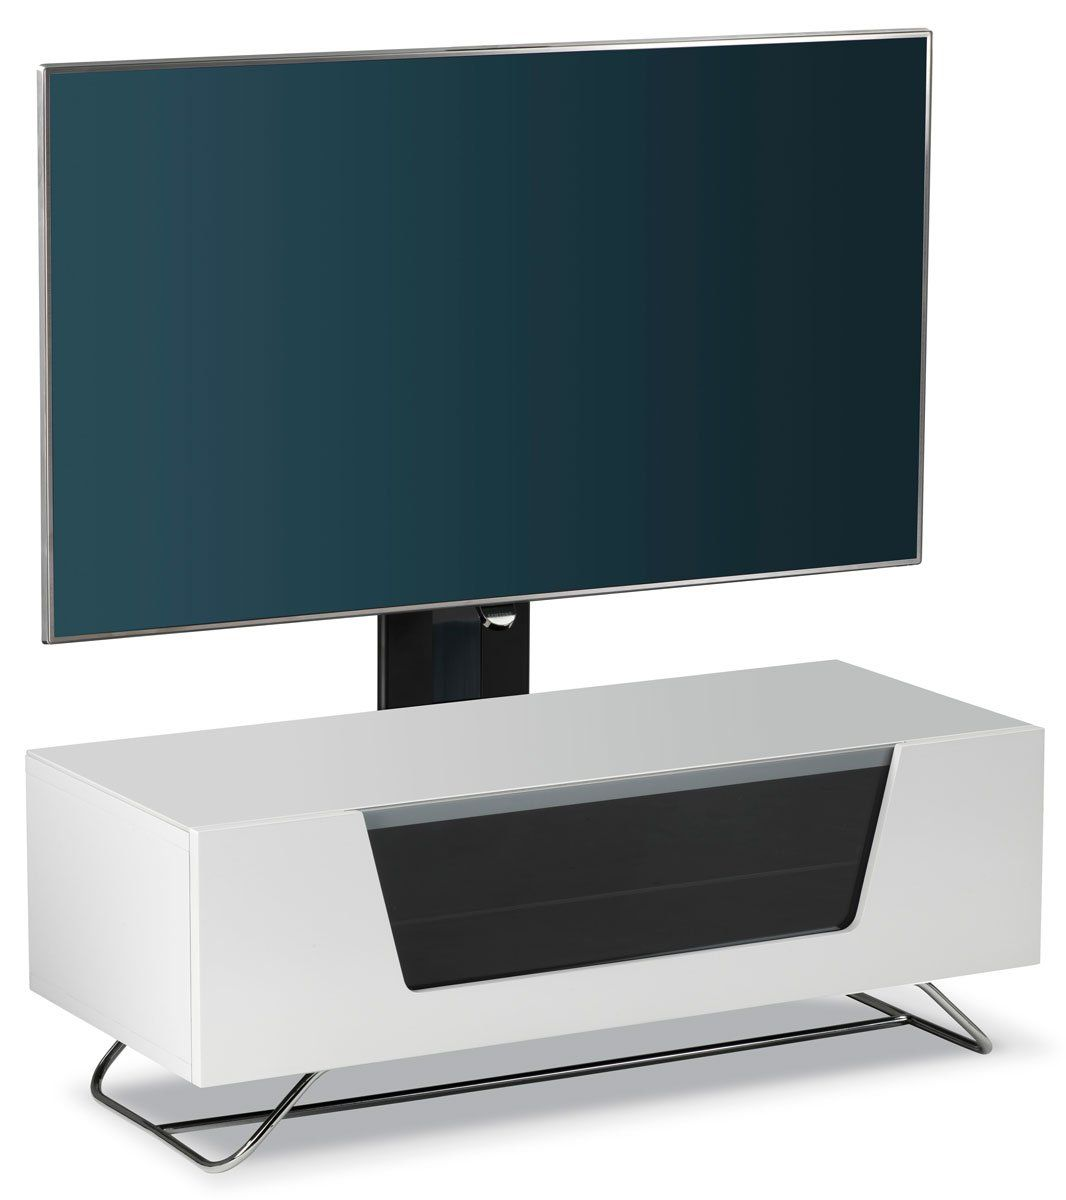 Alphason Chromium White Cantilever Tv Stand Amazon Co Uk Kitchen  # Alphason Meuble Tv